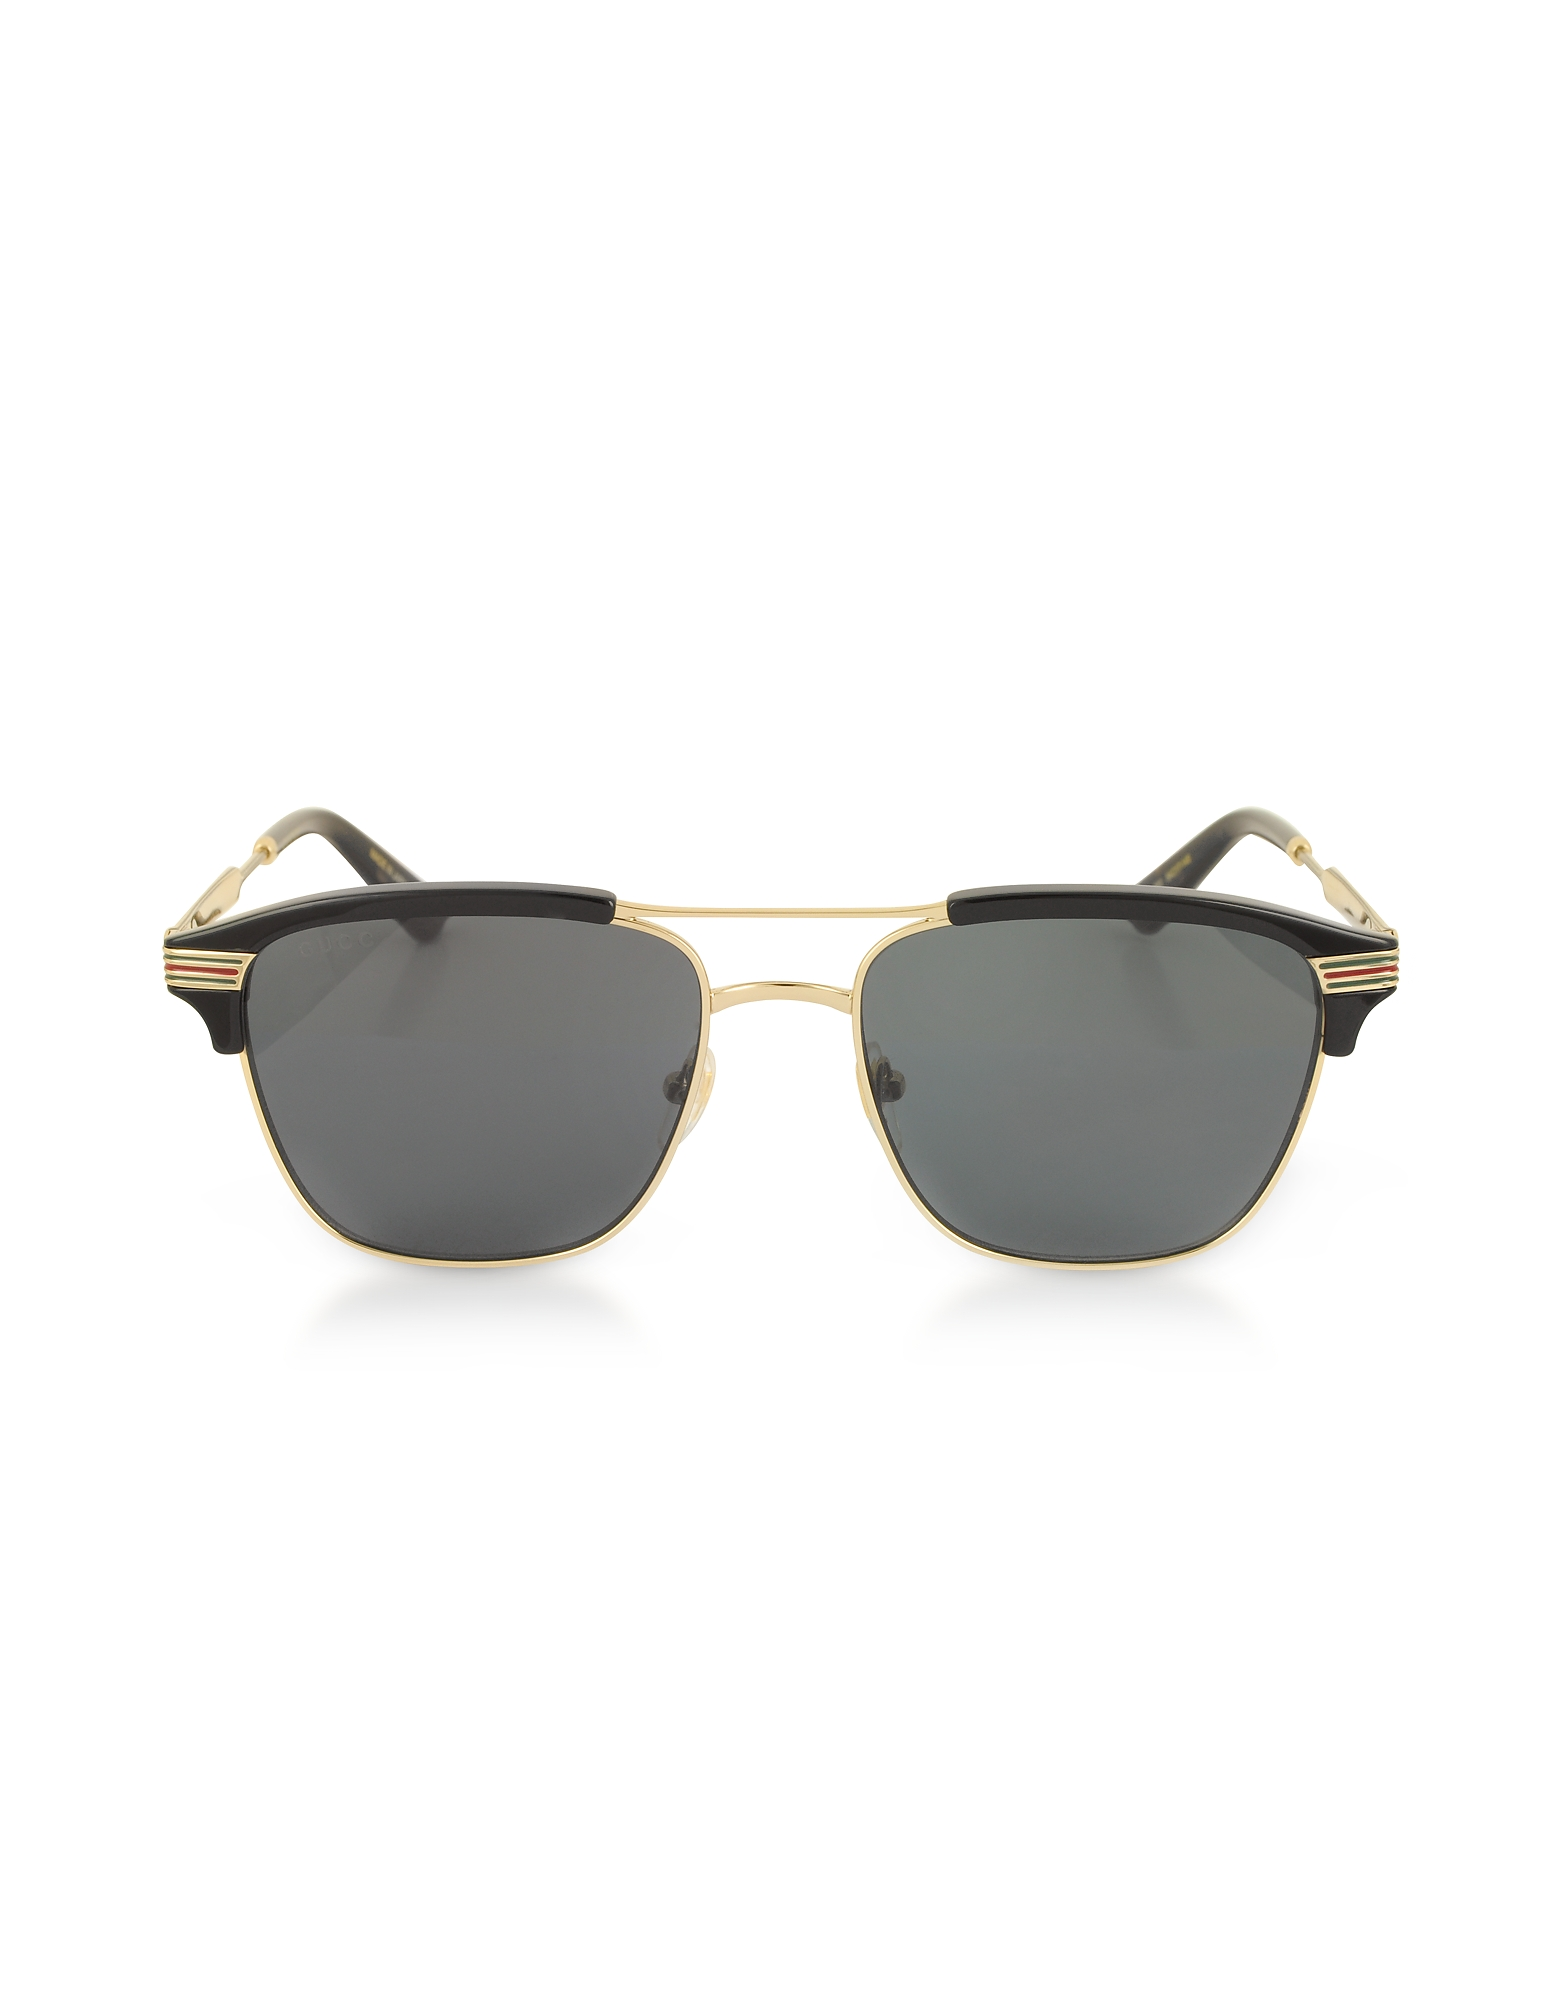 Gucci Sunglasses, GG0241S 002 Square-frame Metal Sunglasses